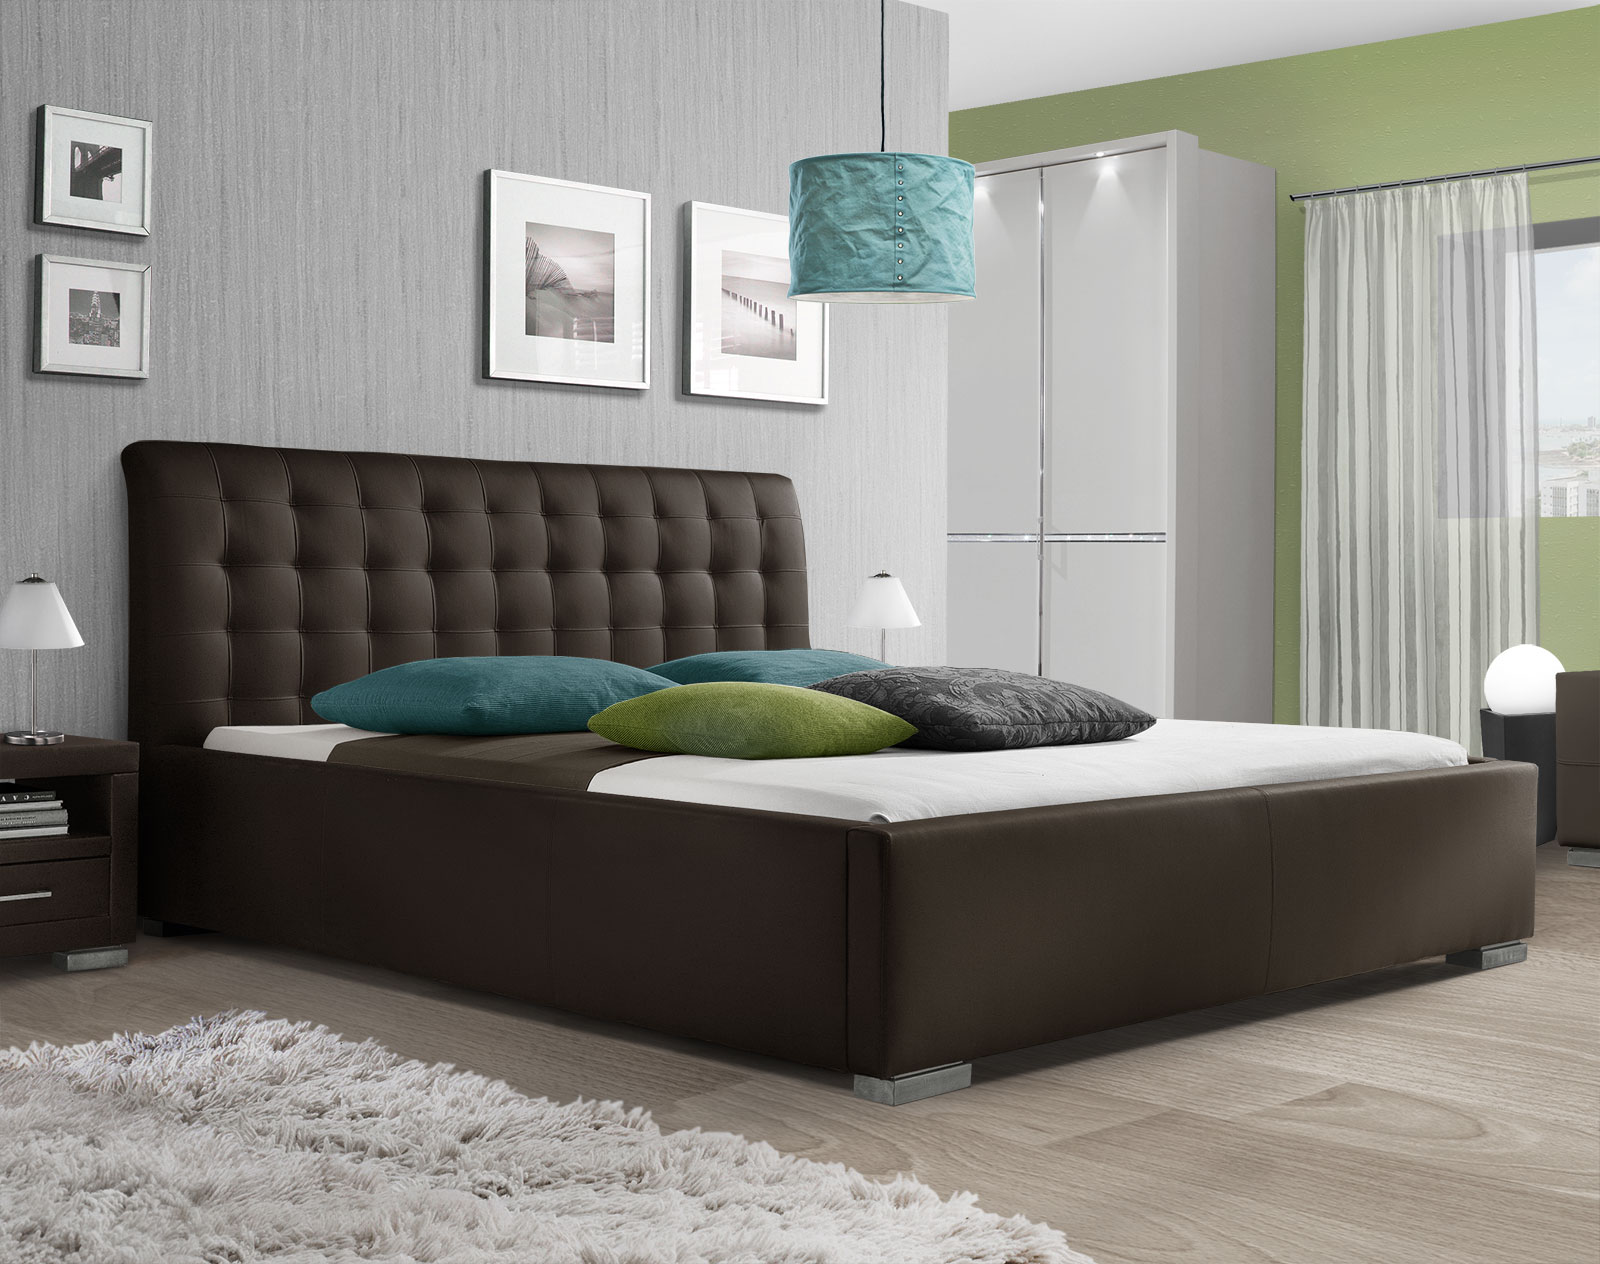 kunstlederbett mit hohem kopfteil baskerville comfort. Black Bedroom Furniture Sets. Home Design Ideas